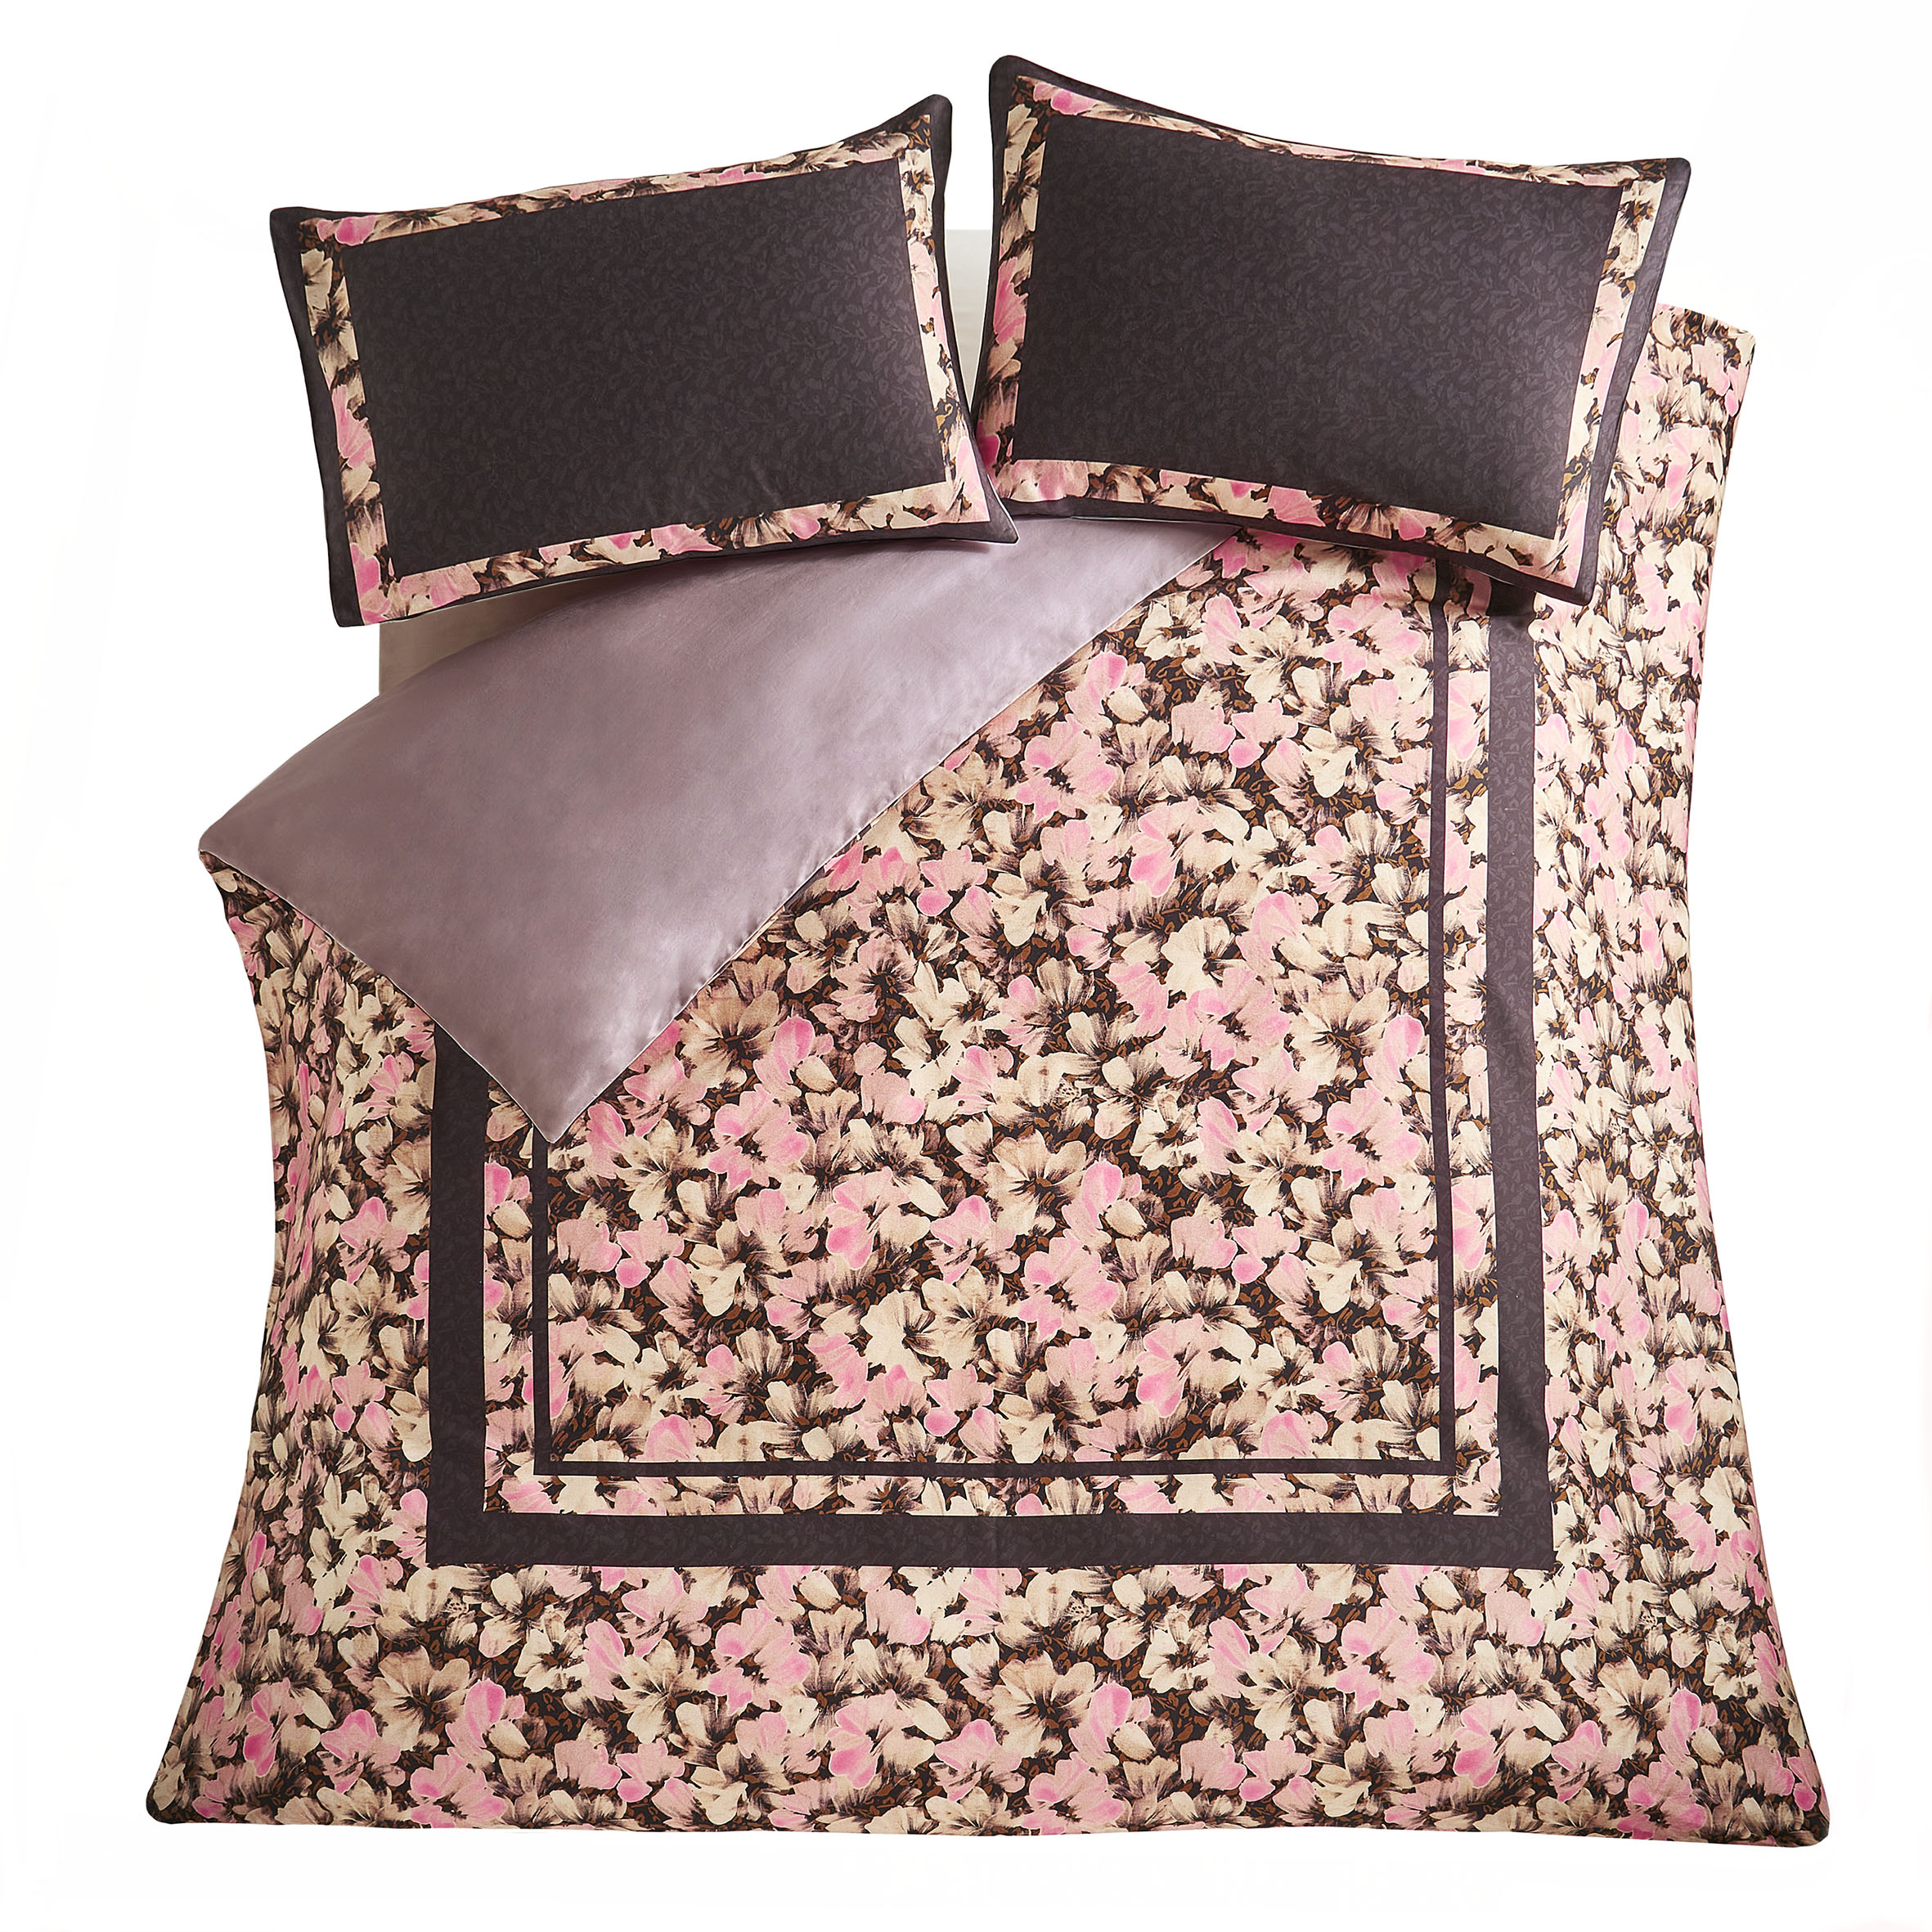 SMUDGE FLORAL DUVET COVER DOUBLE - COSMO